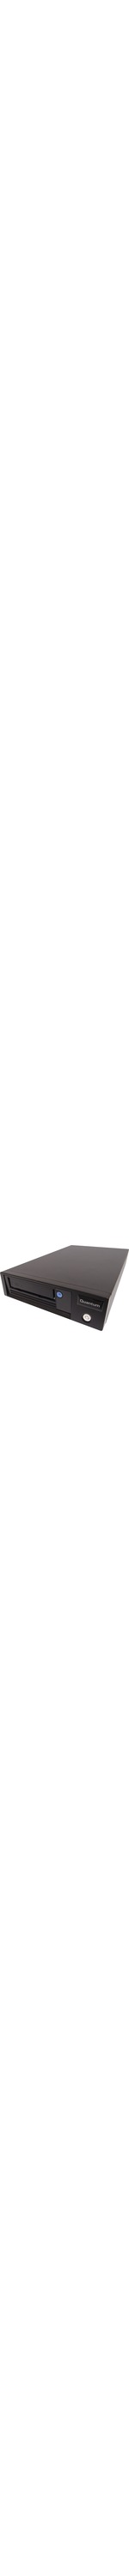 Quantum LTO-5 Tape Drive - 1.50 TB Native/3 TB Compressed - 1/2H Height - 1U Rack Height - Rack-mountable